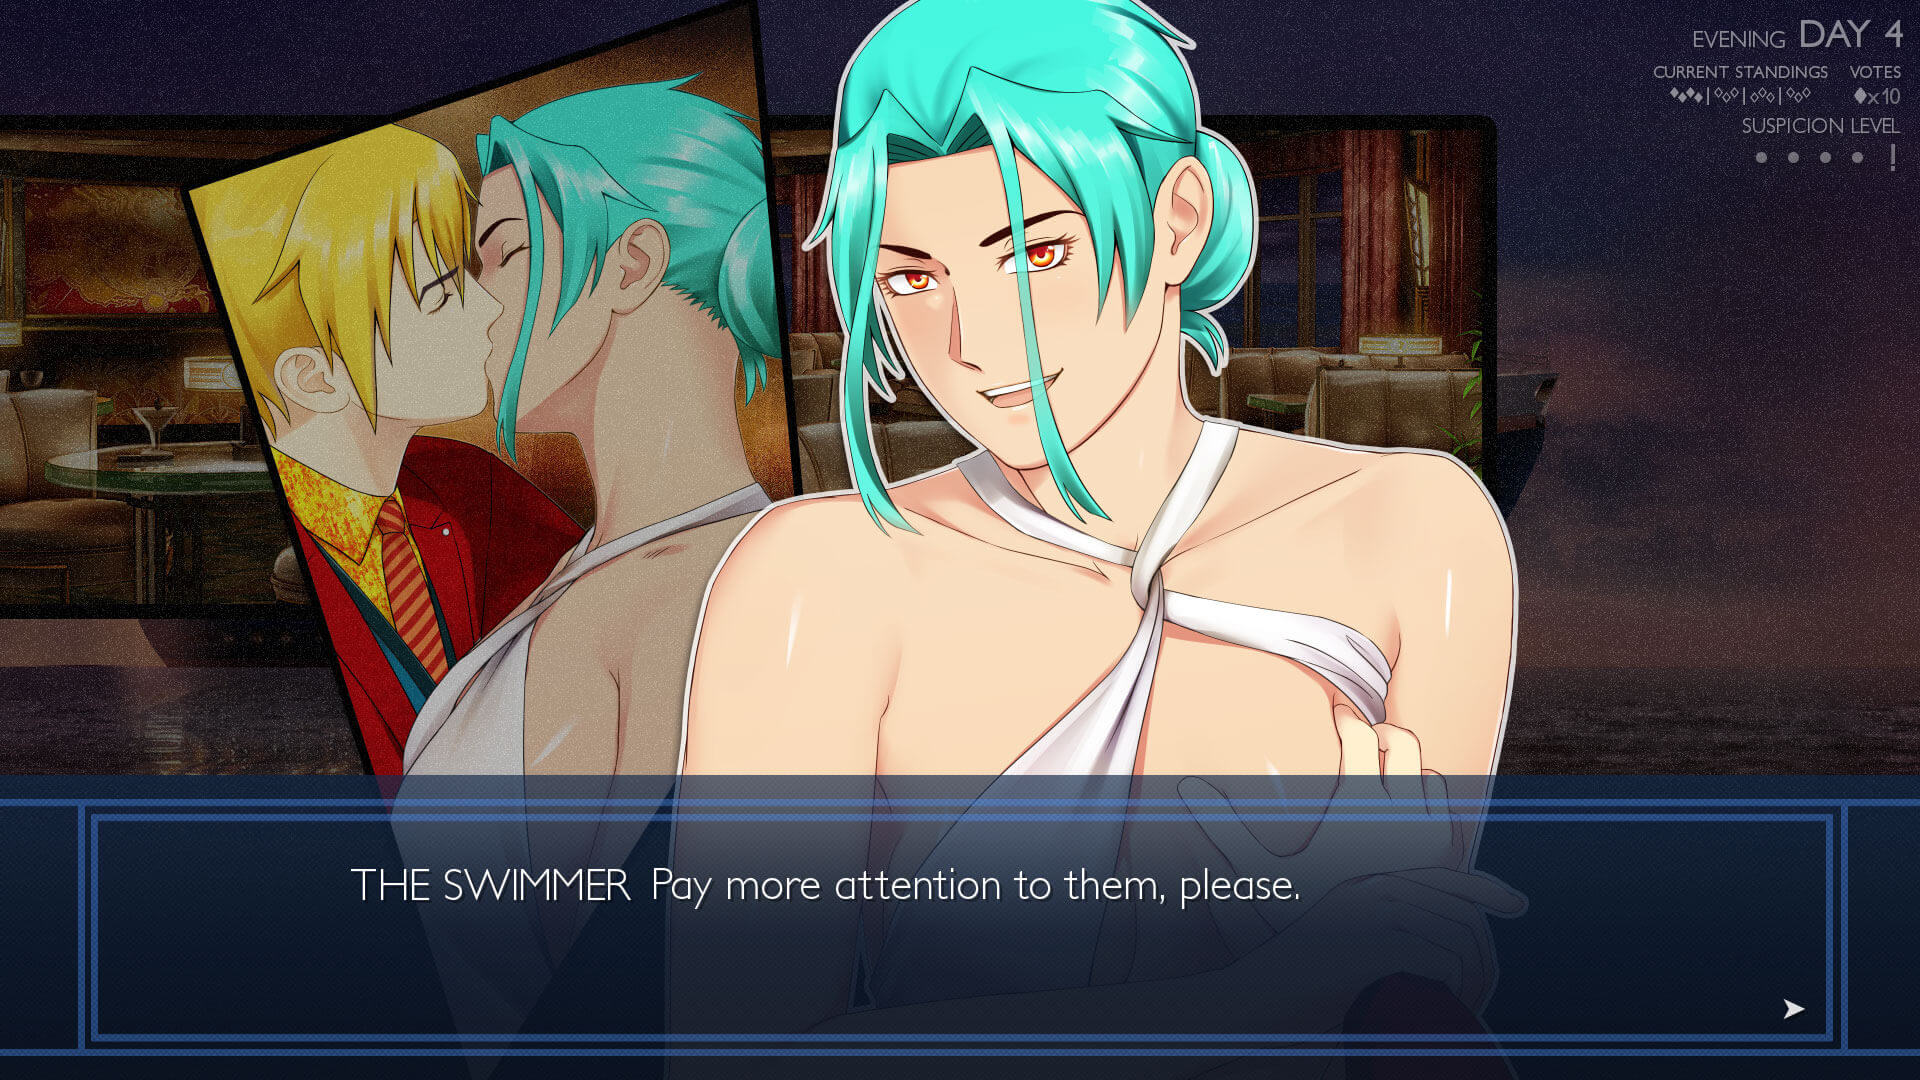 Ladykiller in a Bind is a gay sex game that lets players indulge kinks and genderplay.